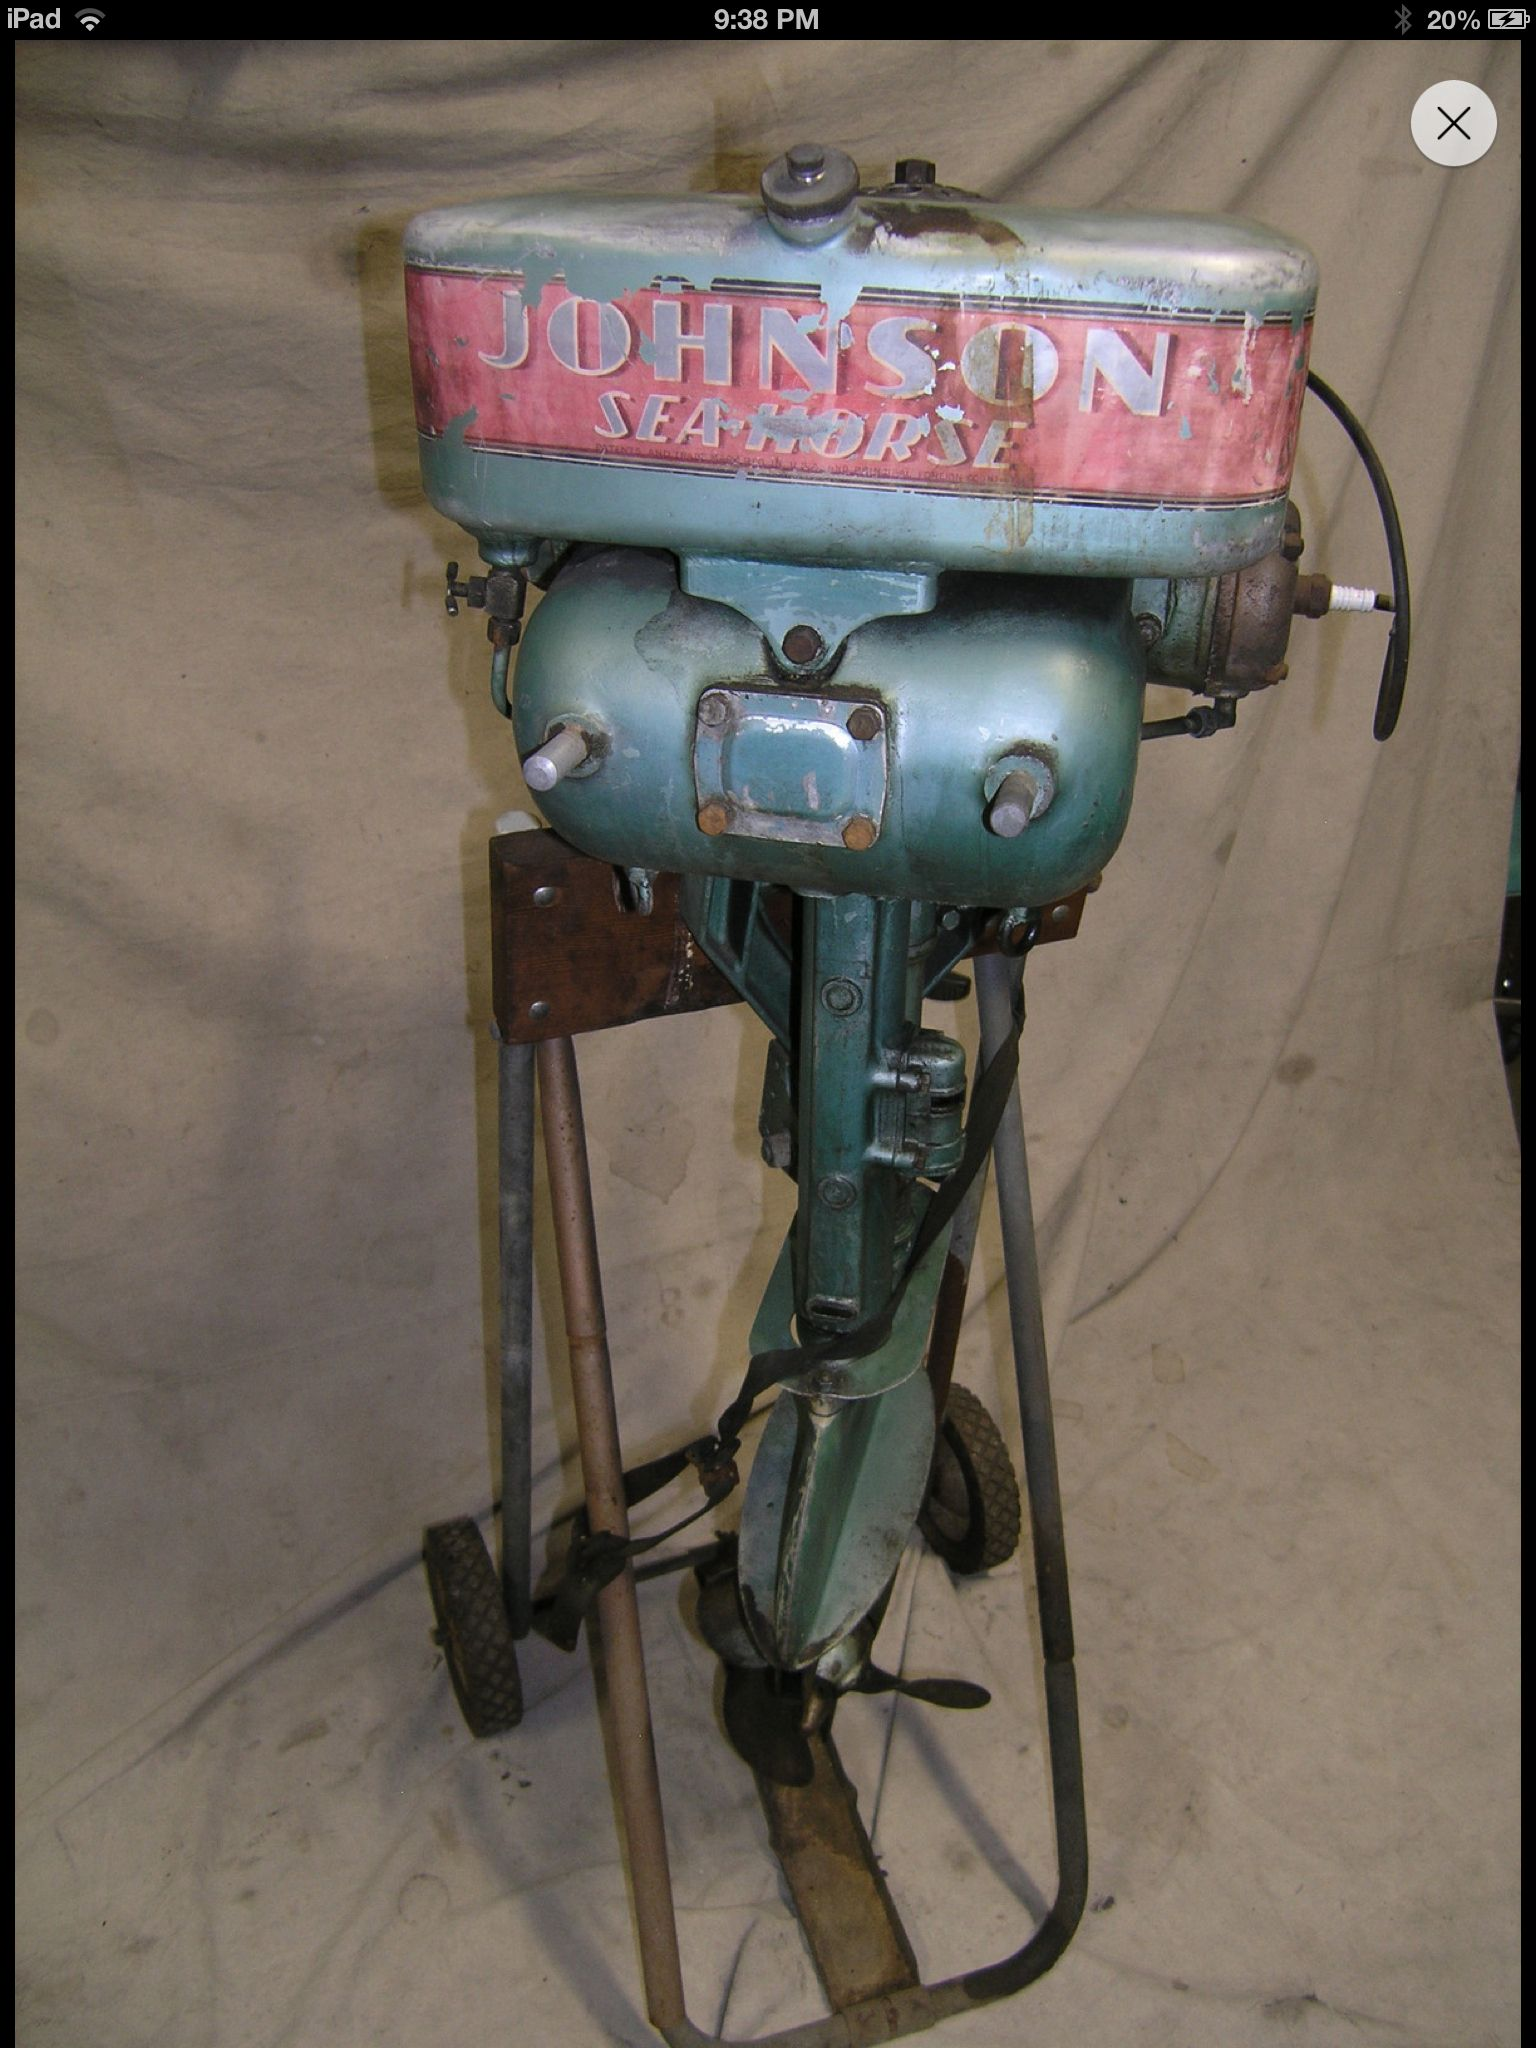 Johnson outboard motor. My son has one of these in his room. He says it's a PO-15 22hp from the 40's.